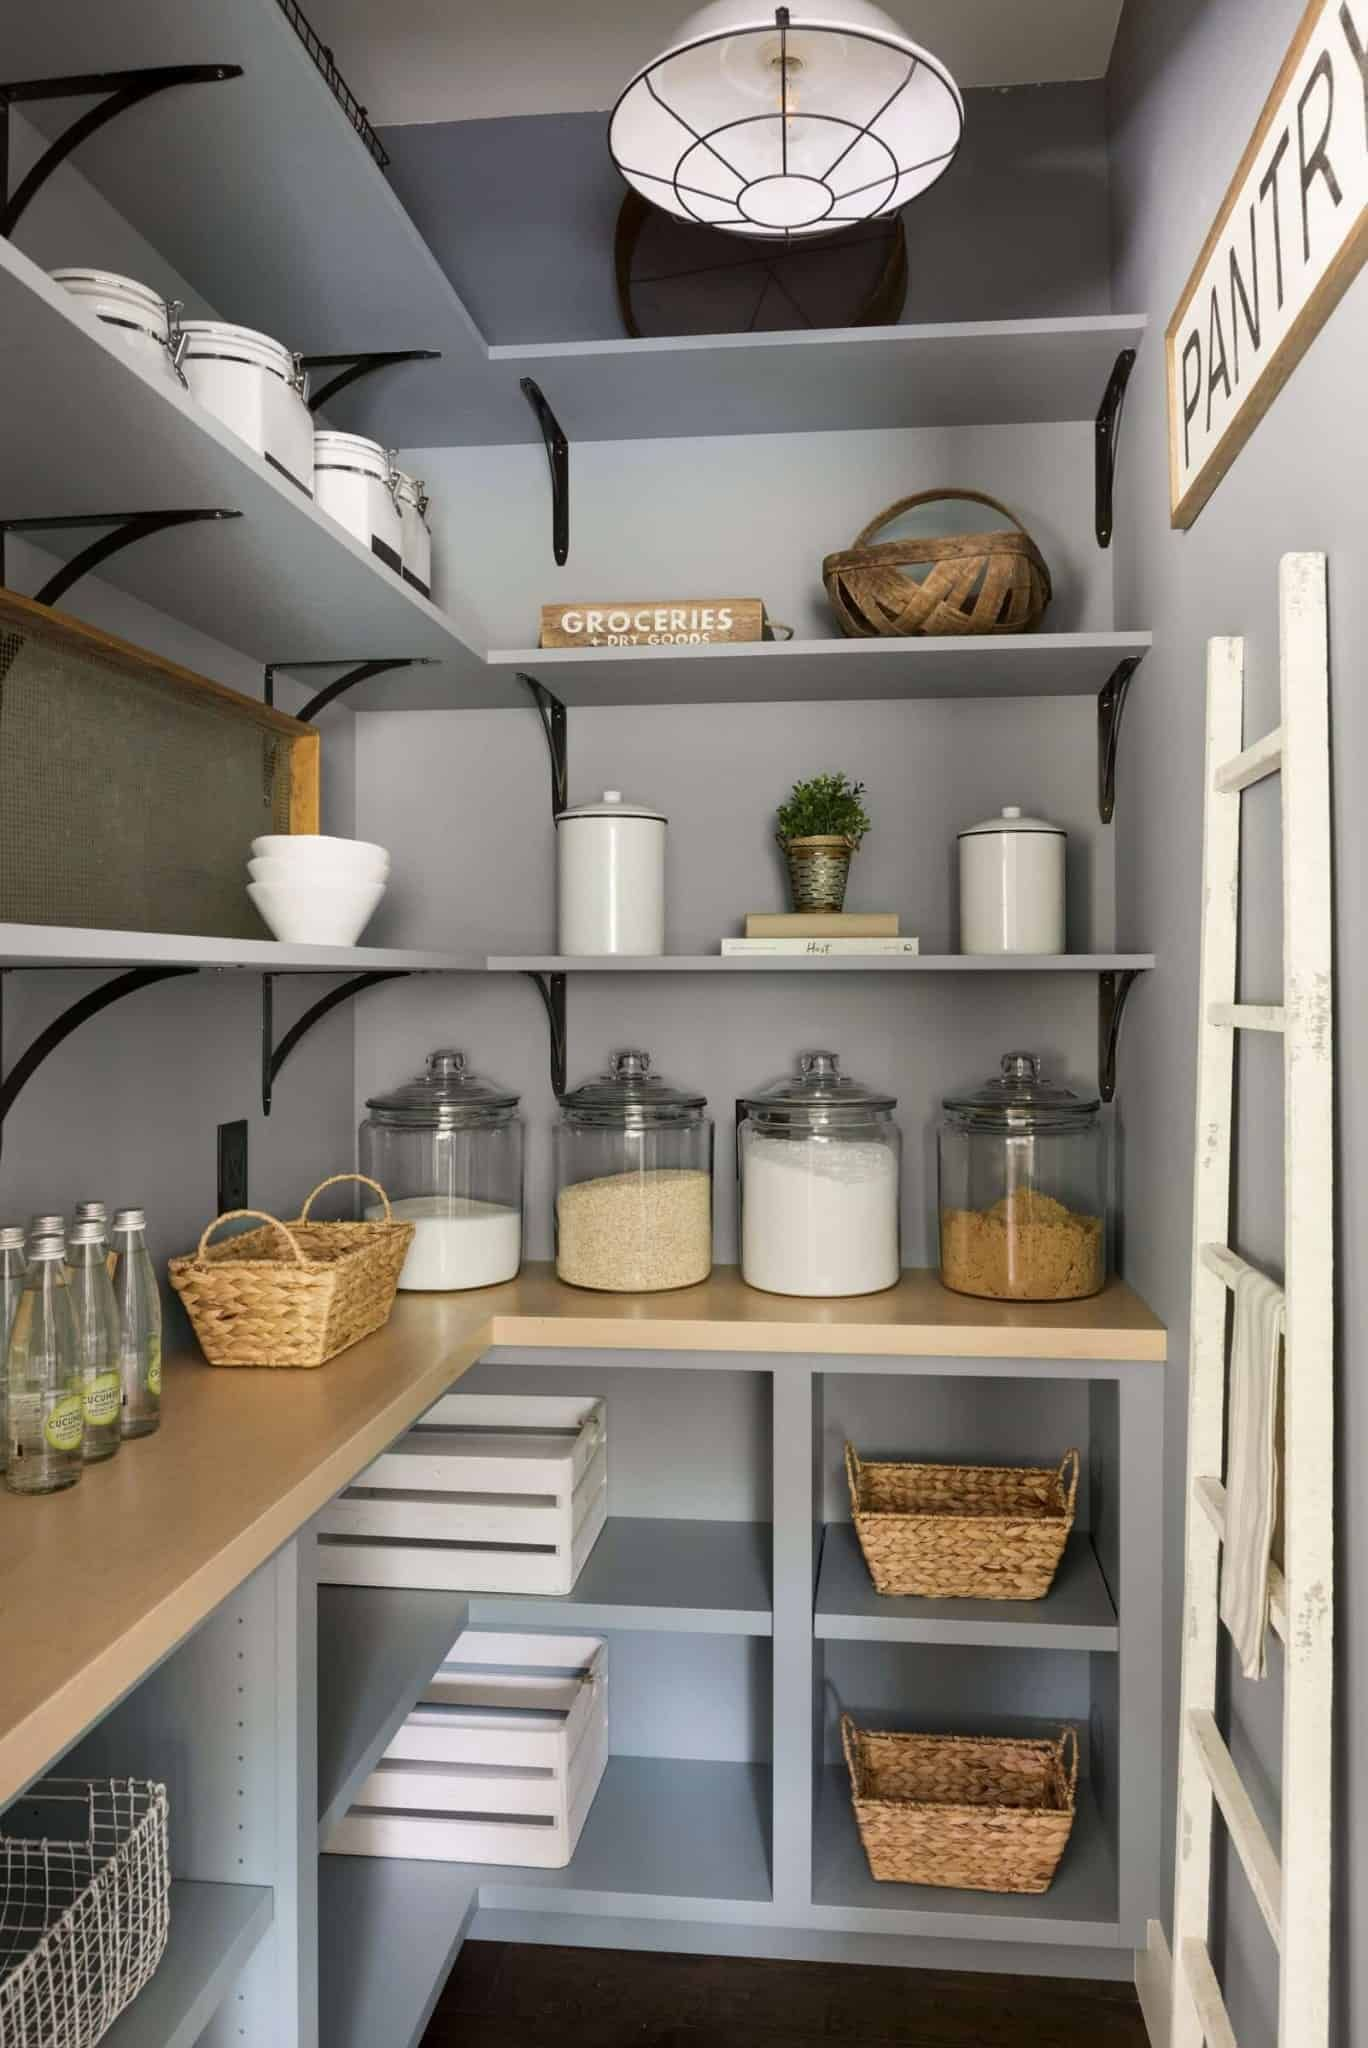 26 Pantry Shelving And Organization Ideas In 2020 Kitchen Pantry